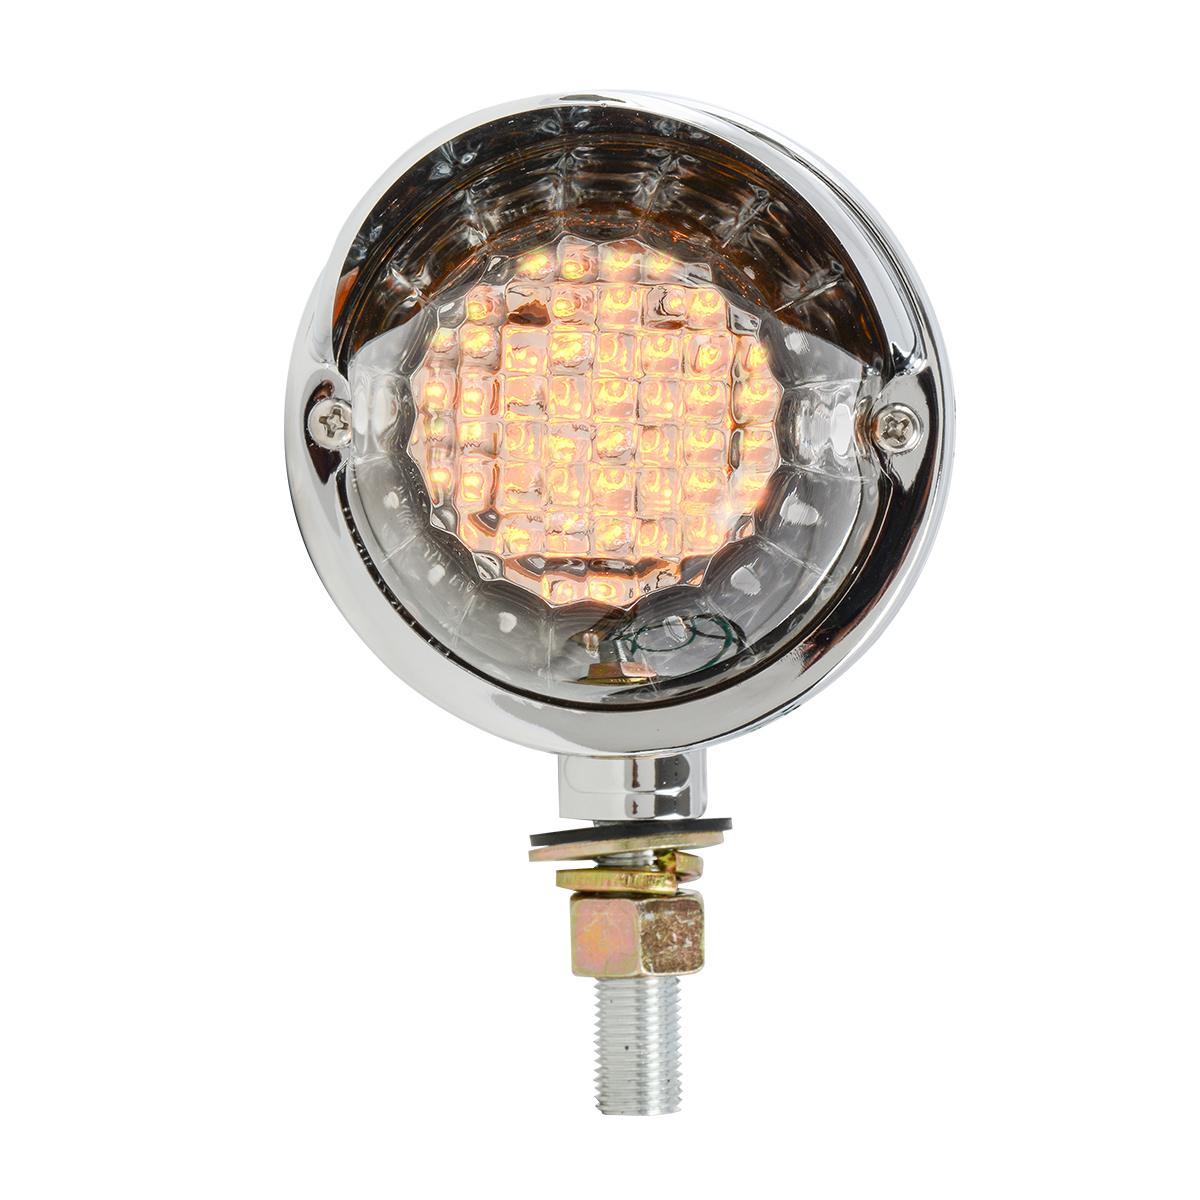 77994 Double Face Glass Lens LED Pedestal Light